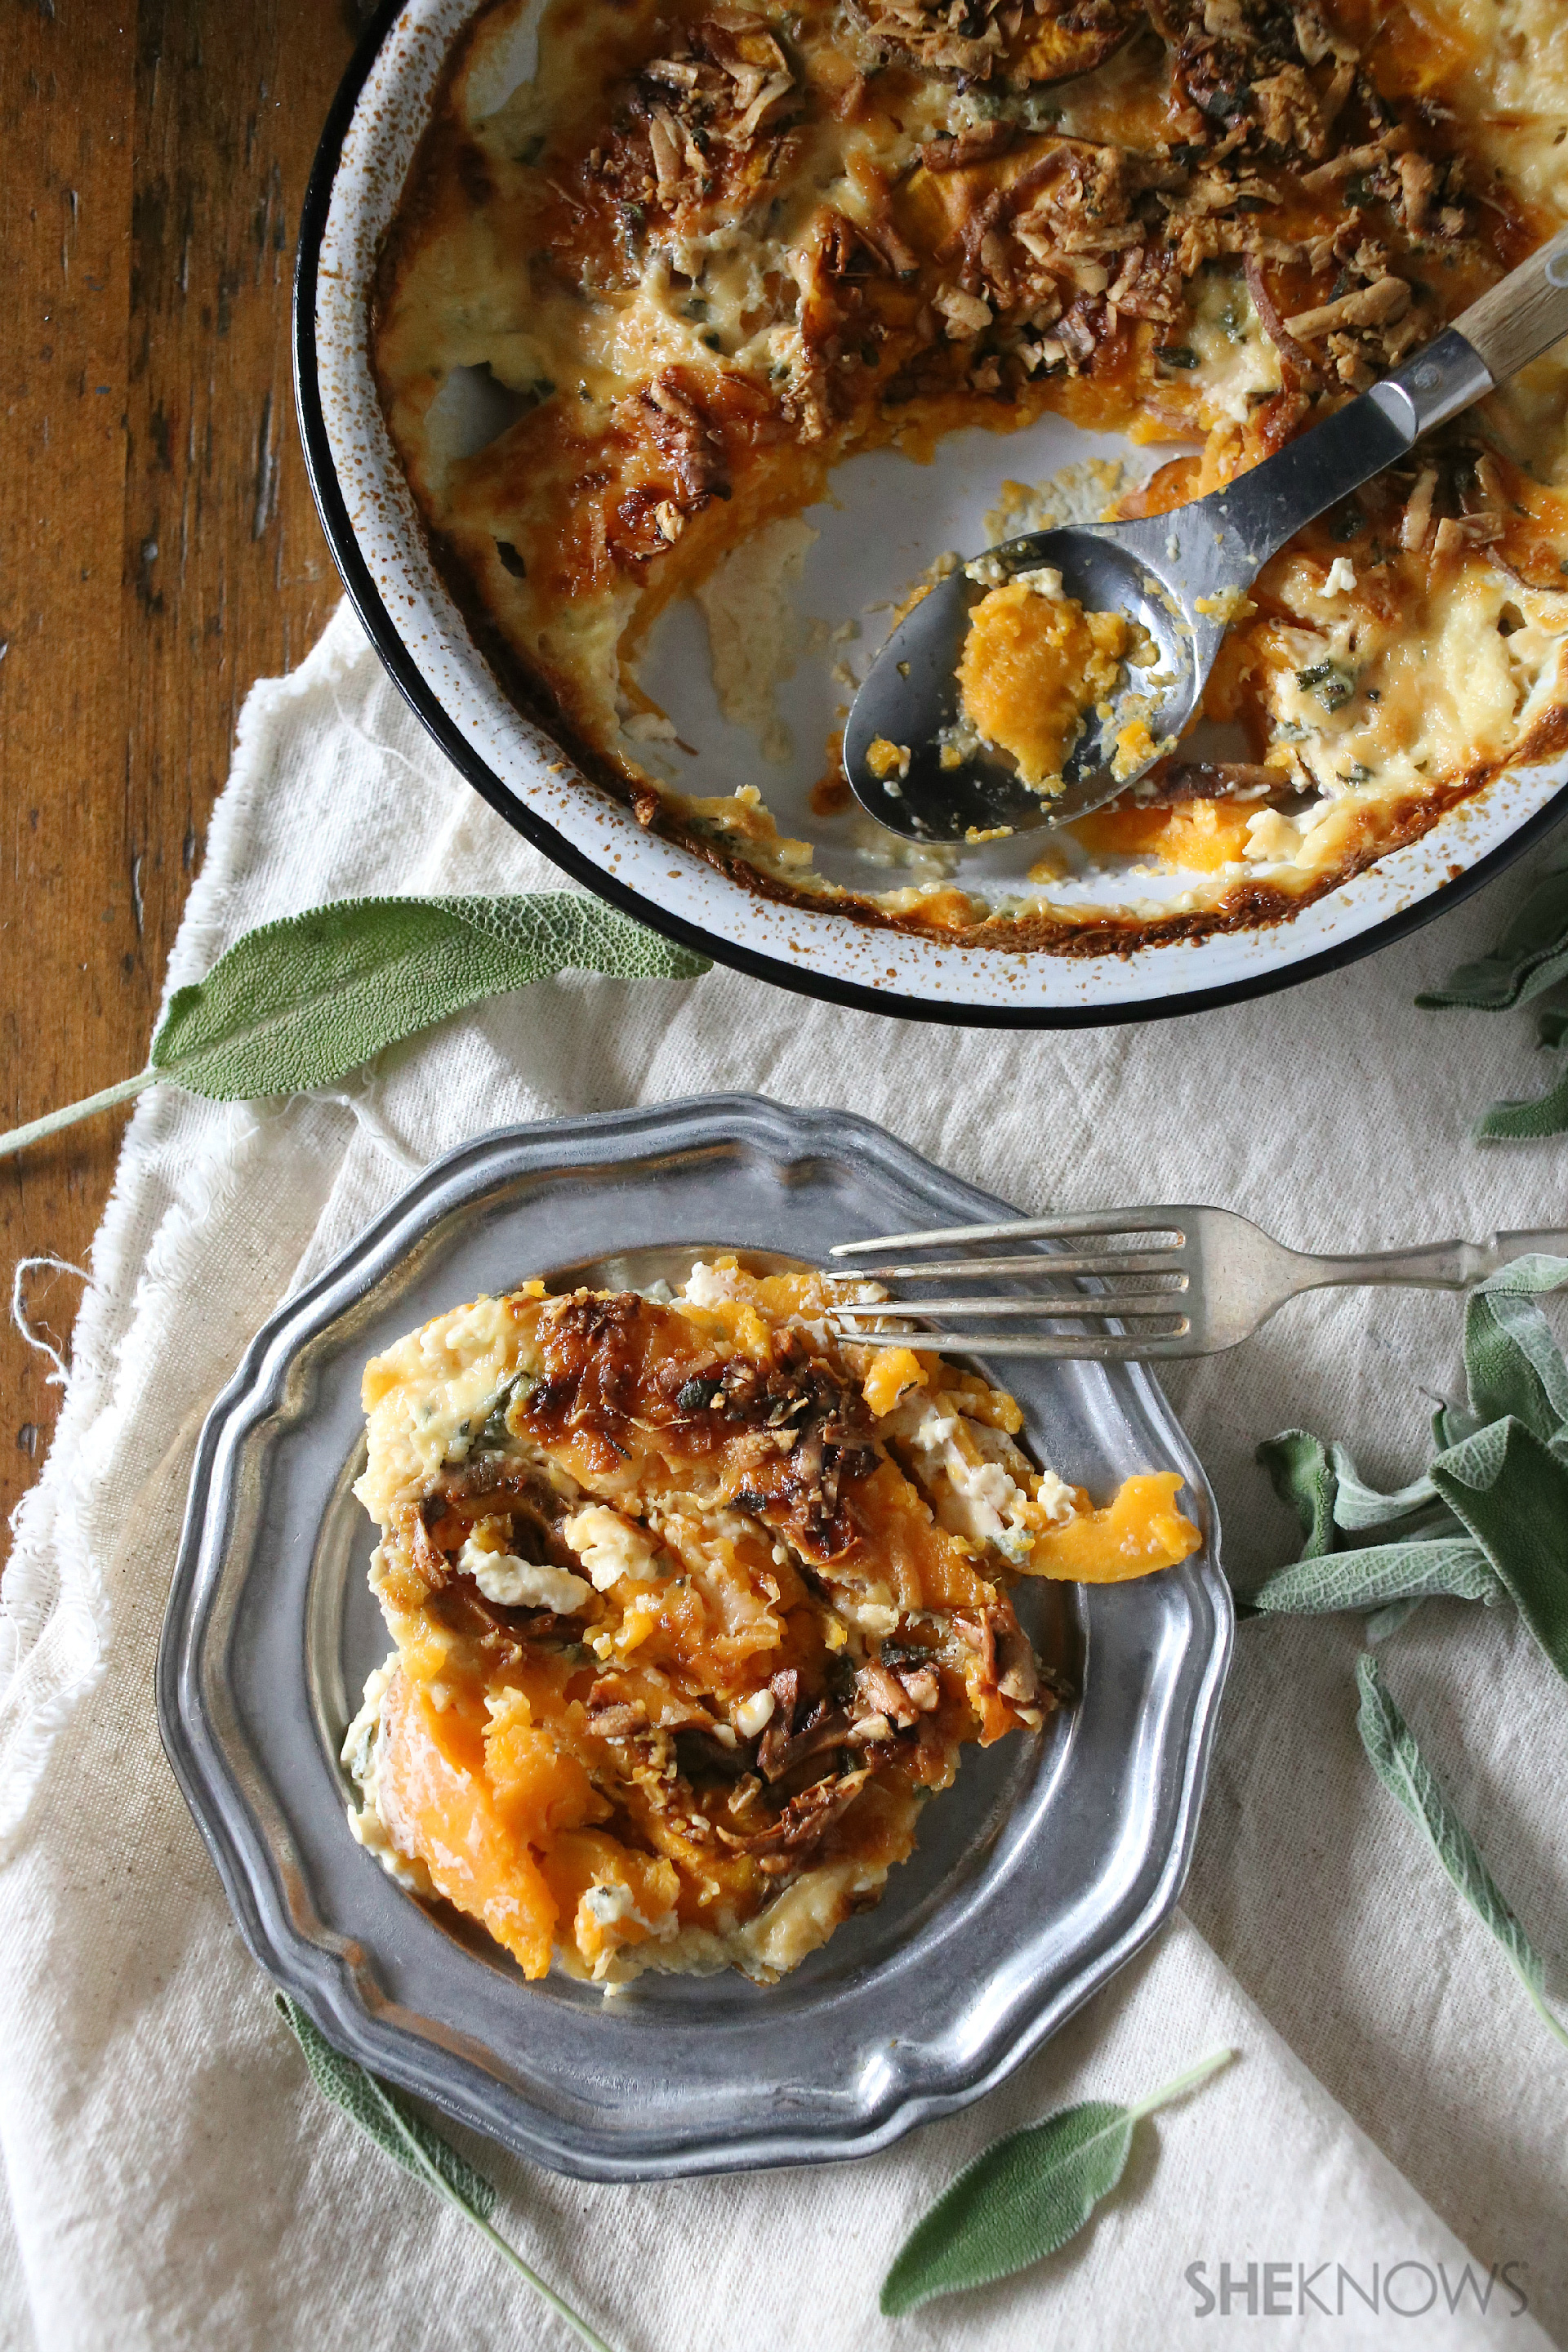 ... potato gratin potato gratin sweet potato gratin with smoky breadcrumbs